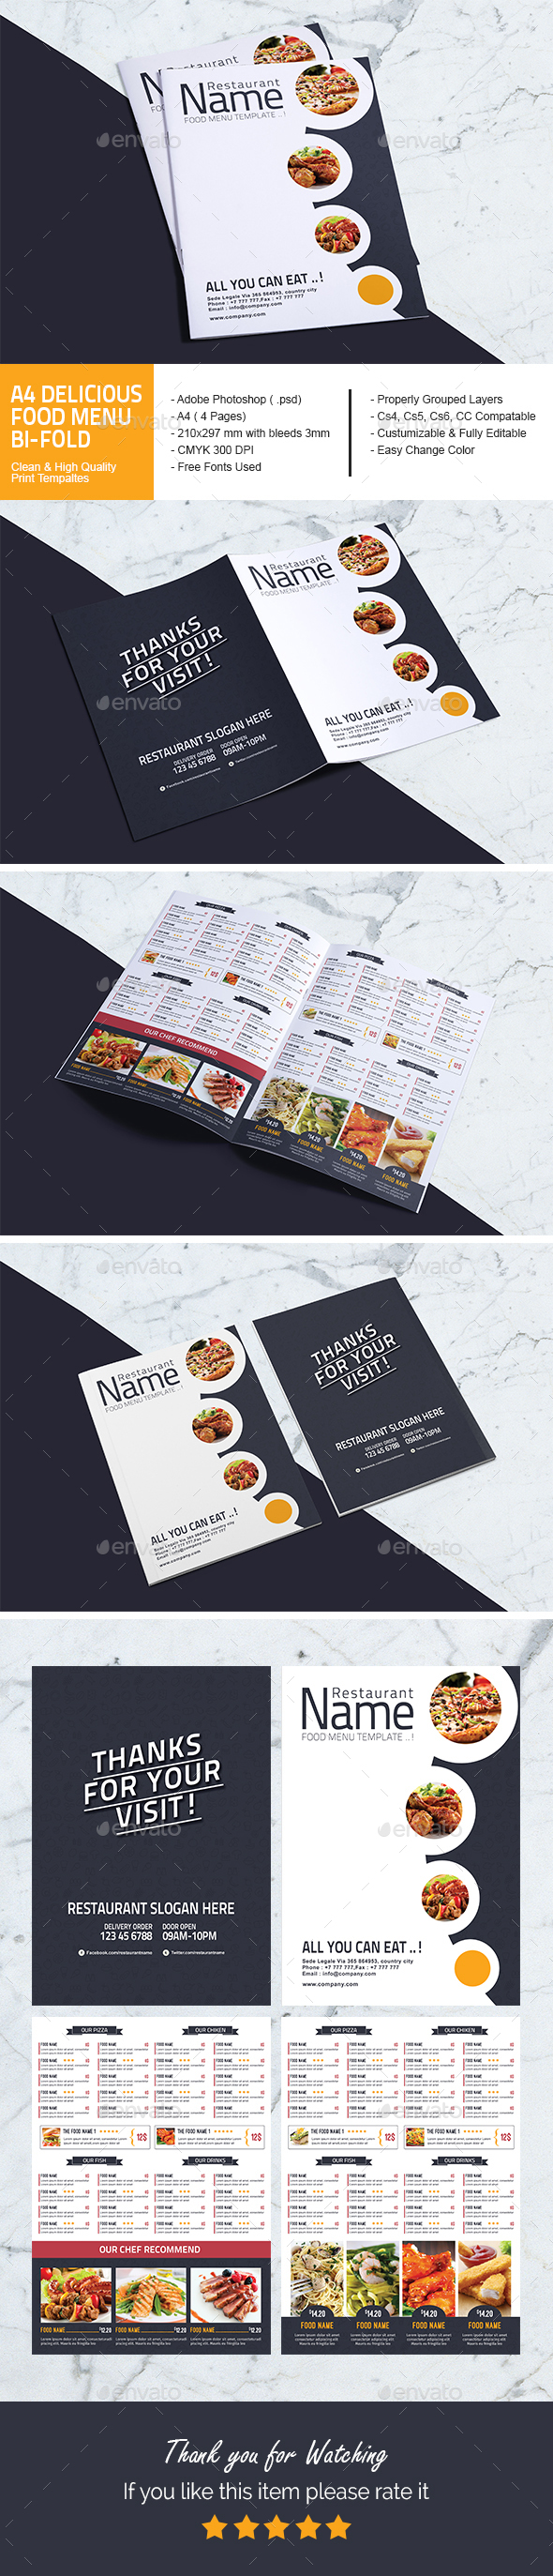 A4 Delicious Food Menu Bi-Fold - Food Menus Print Templates